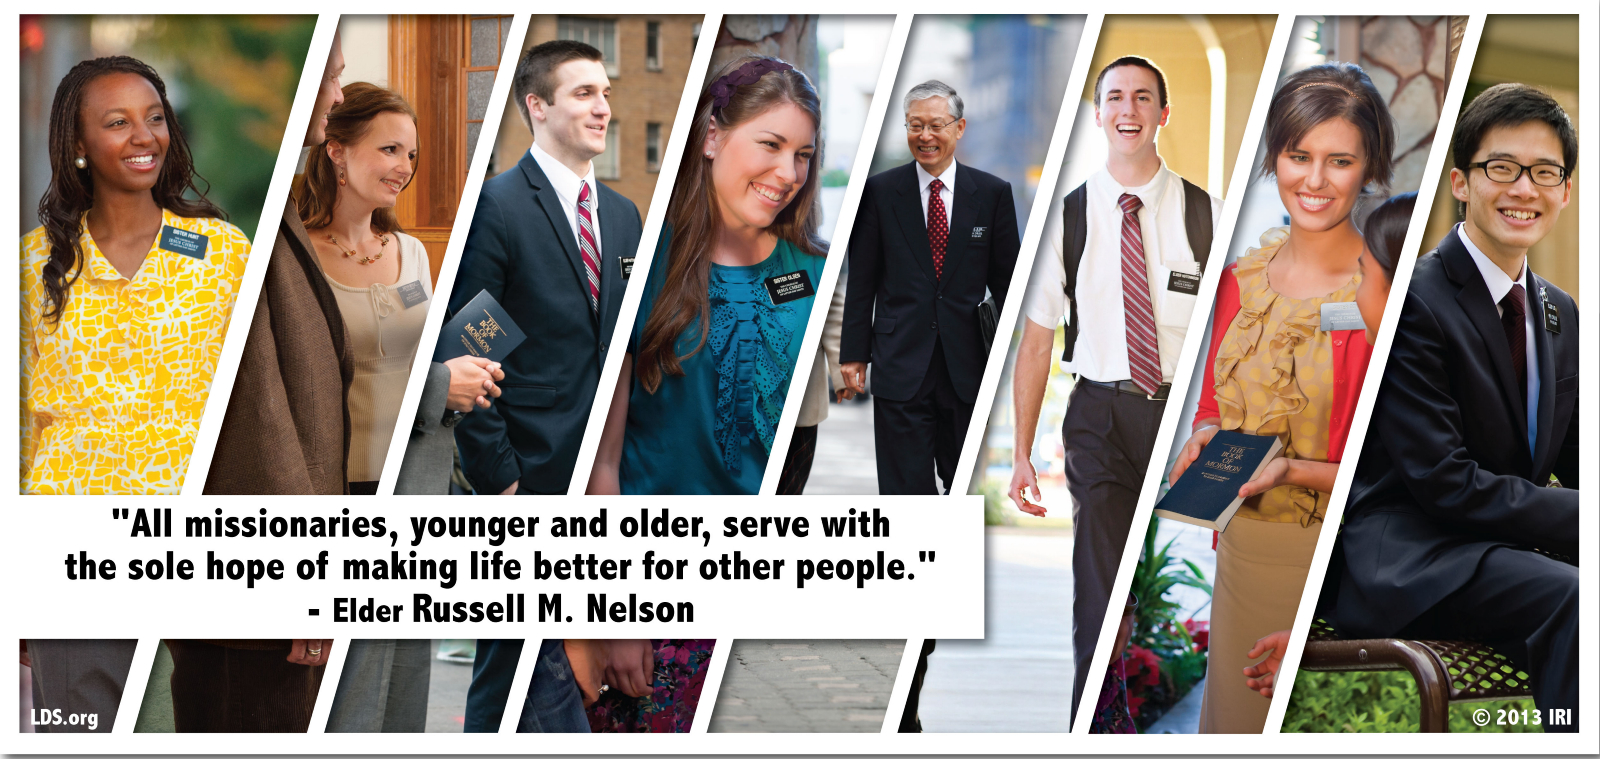 Elder Russell M. Nelson Quote